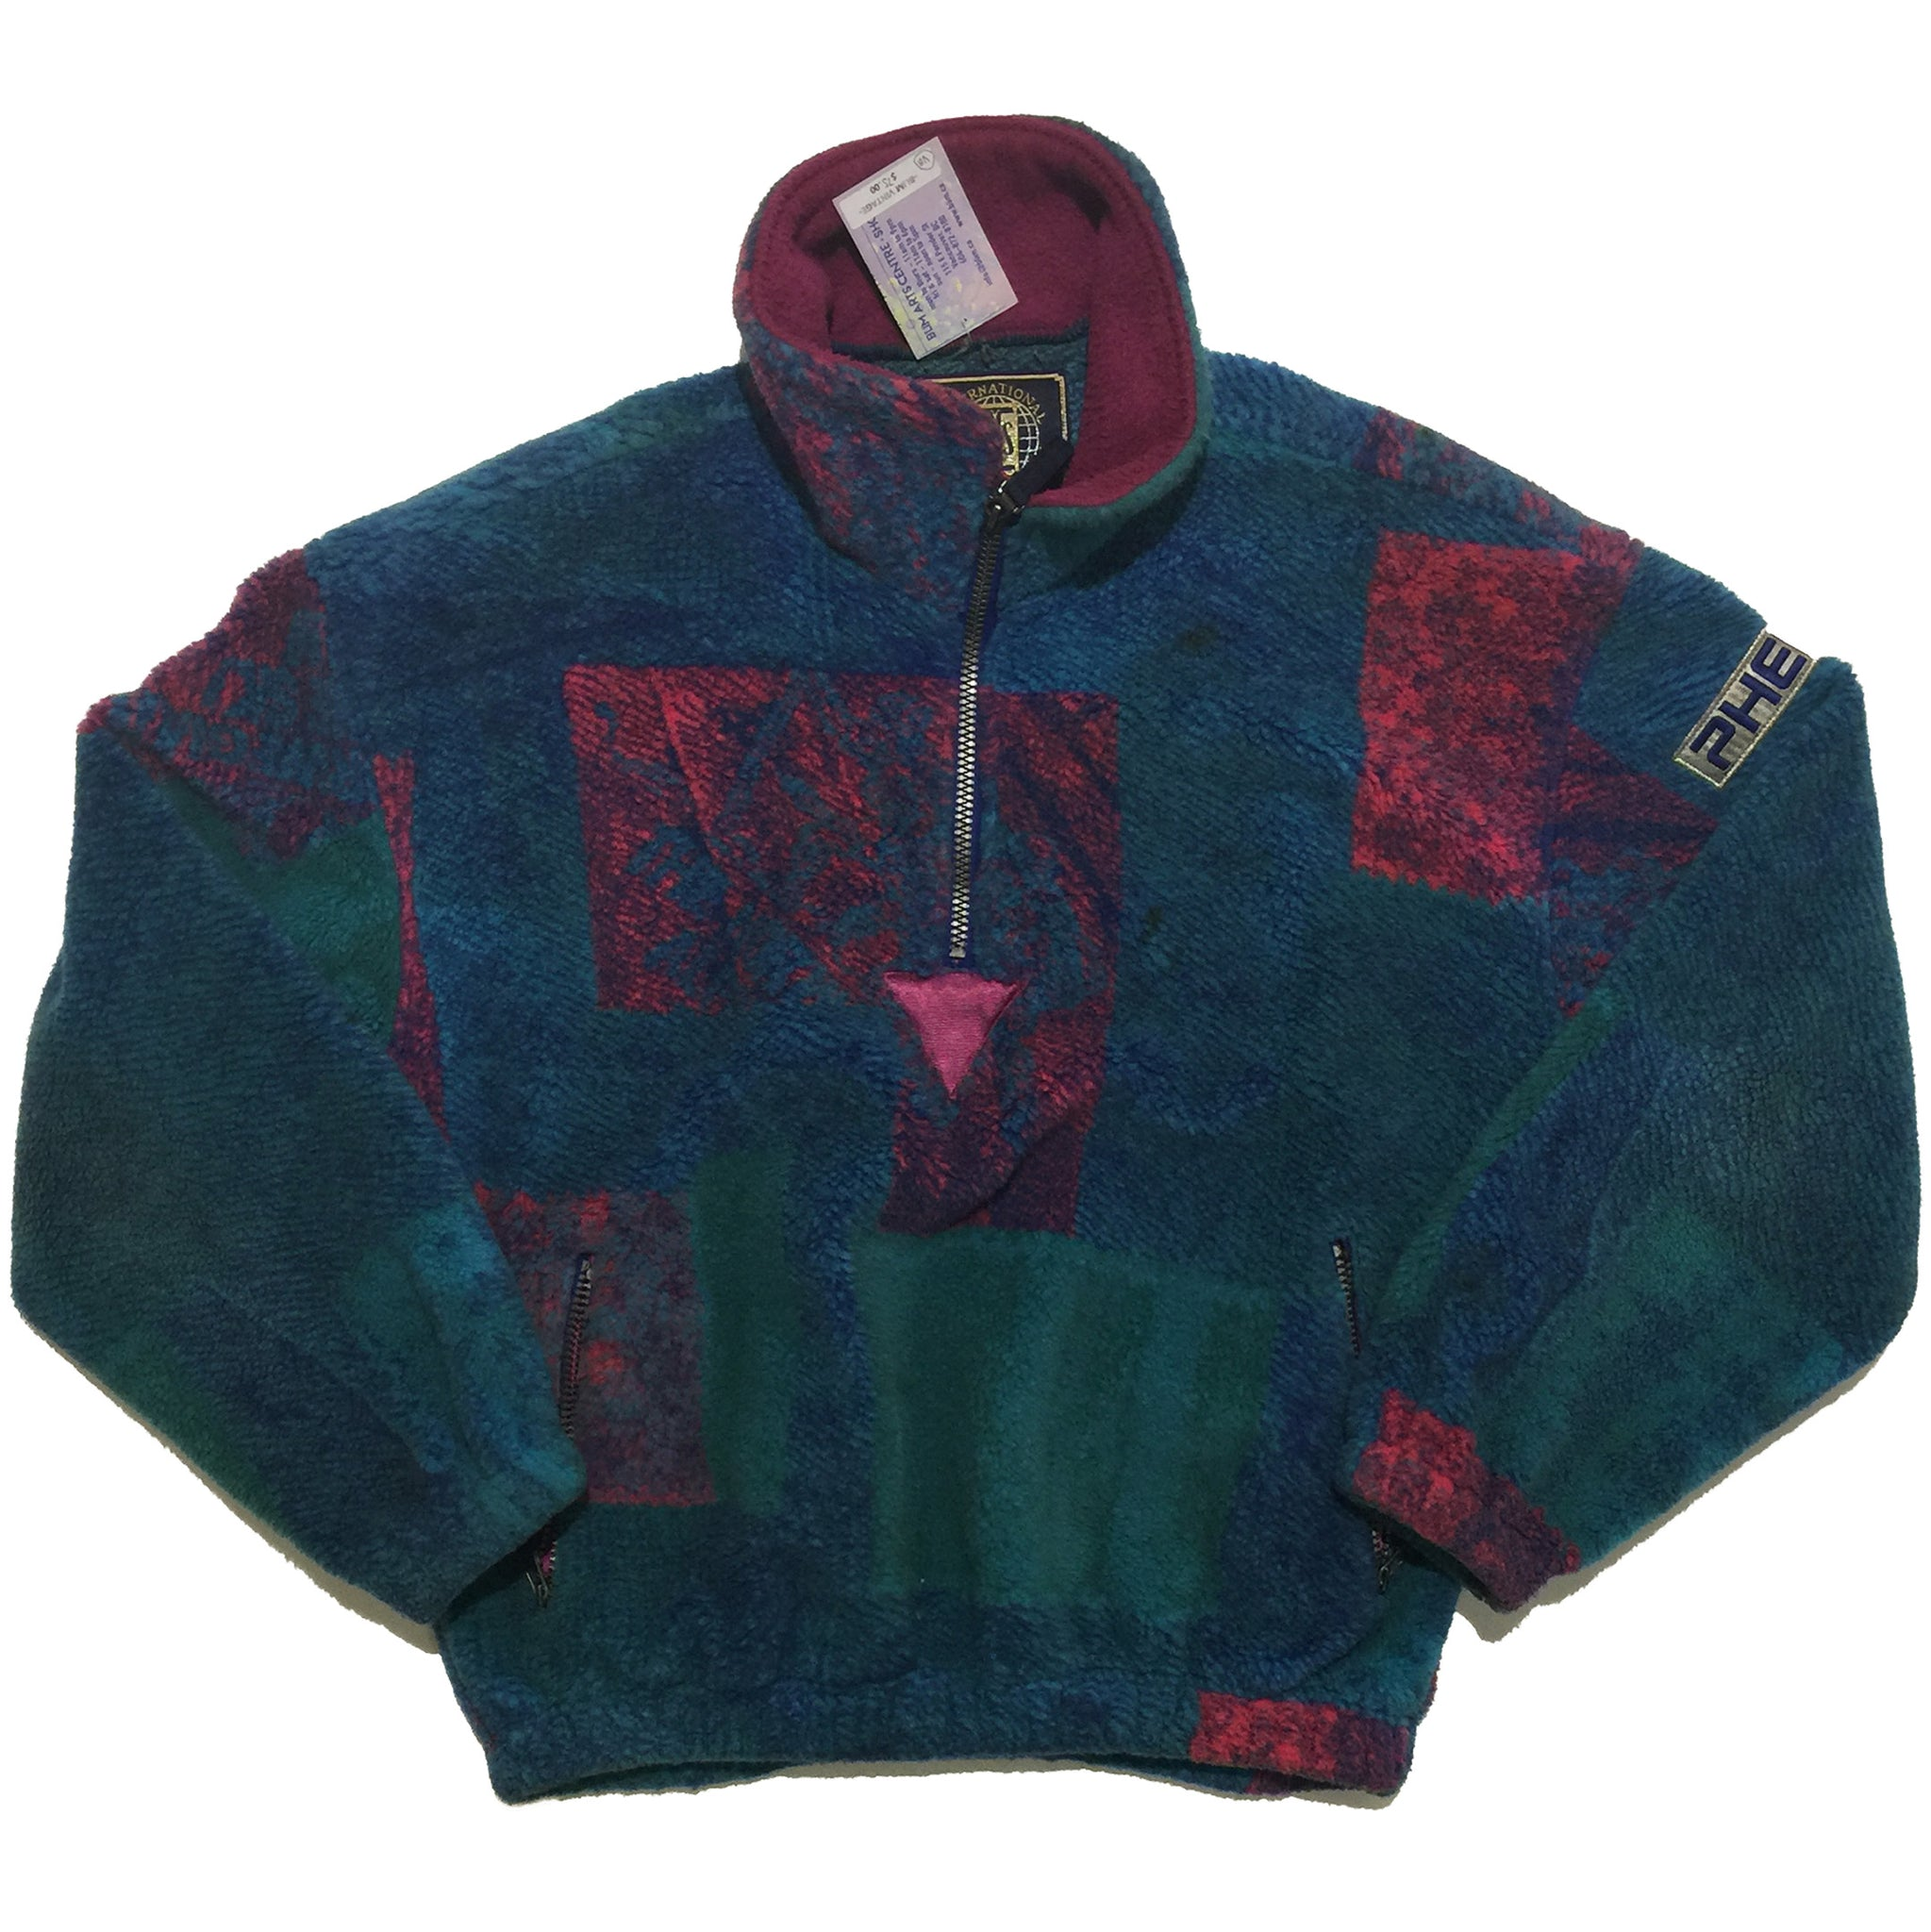 Phenix Blue, Green, and Red Polyester and Acrylic Half Zip Sweater